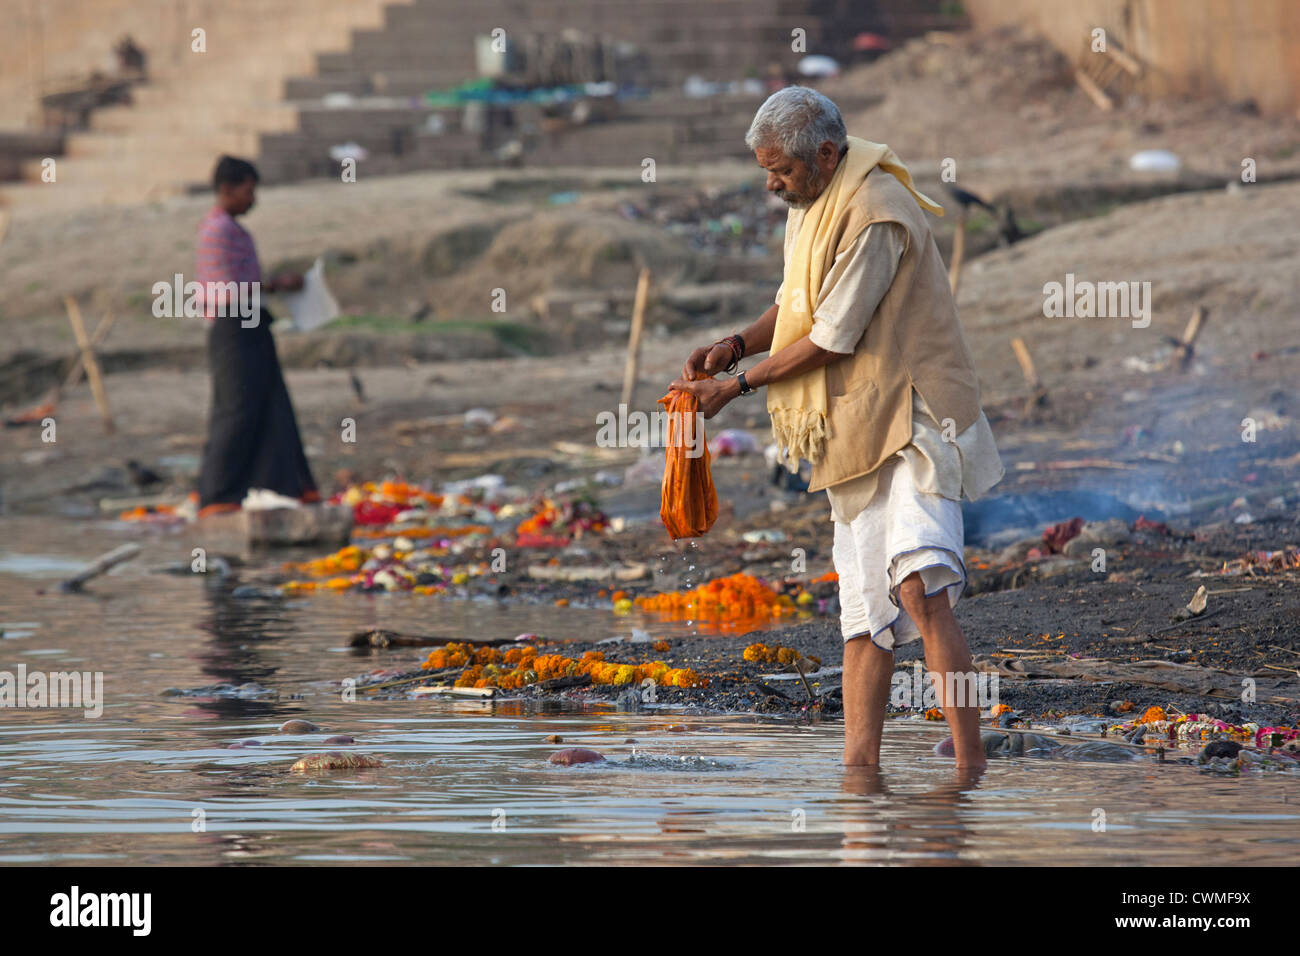 Indian man washing linen in polluted water of the Ganges river at Varanasi, Uttar Pradesh, India - Stock Image